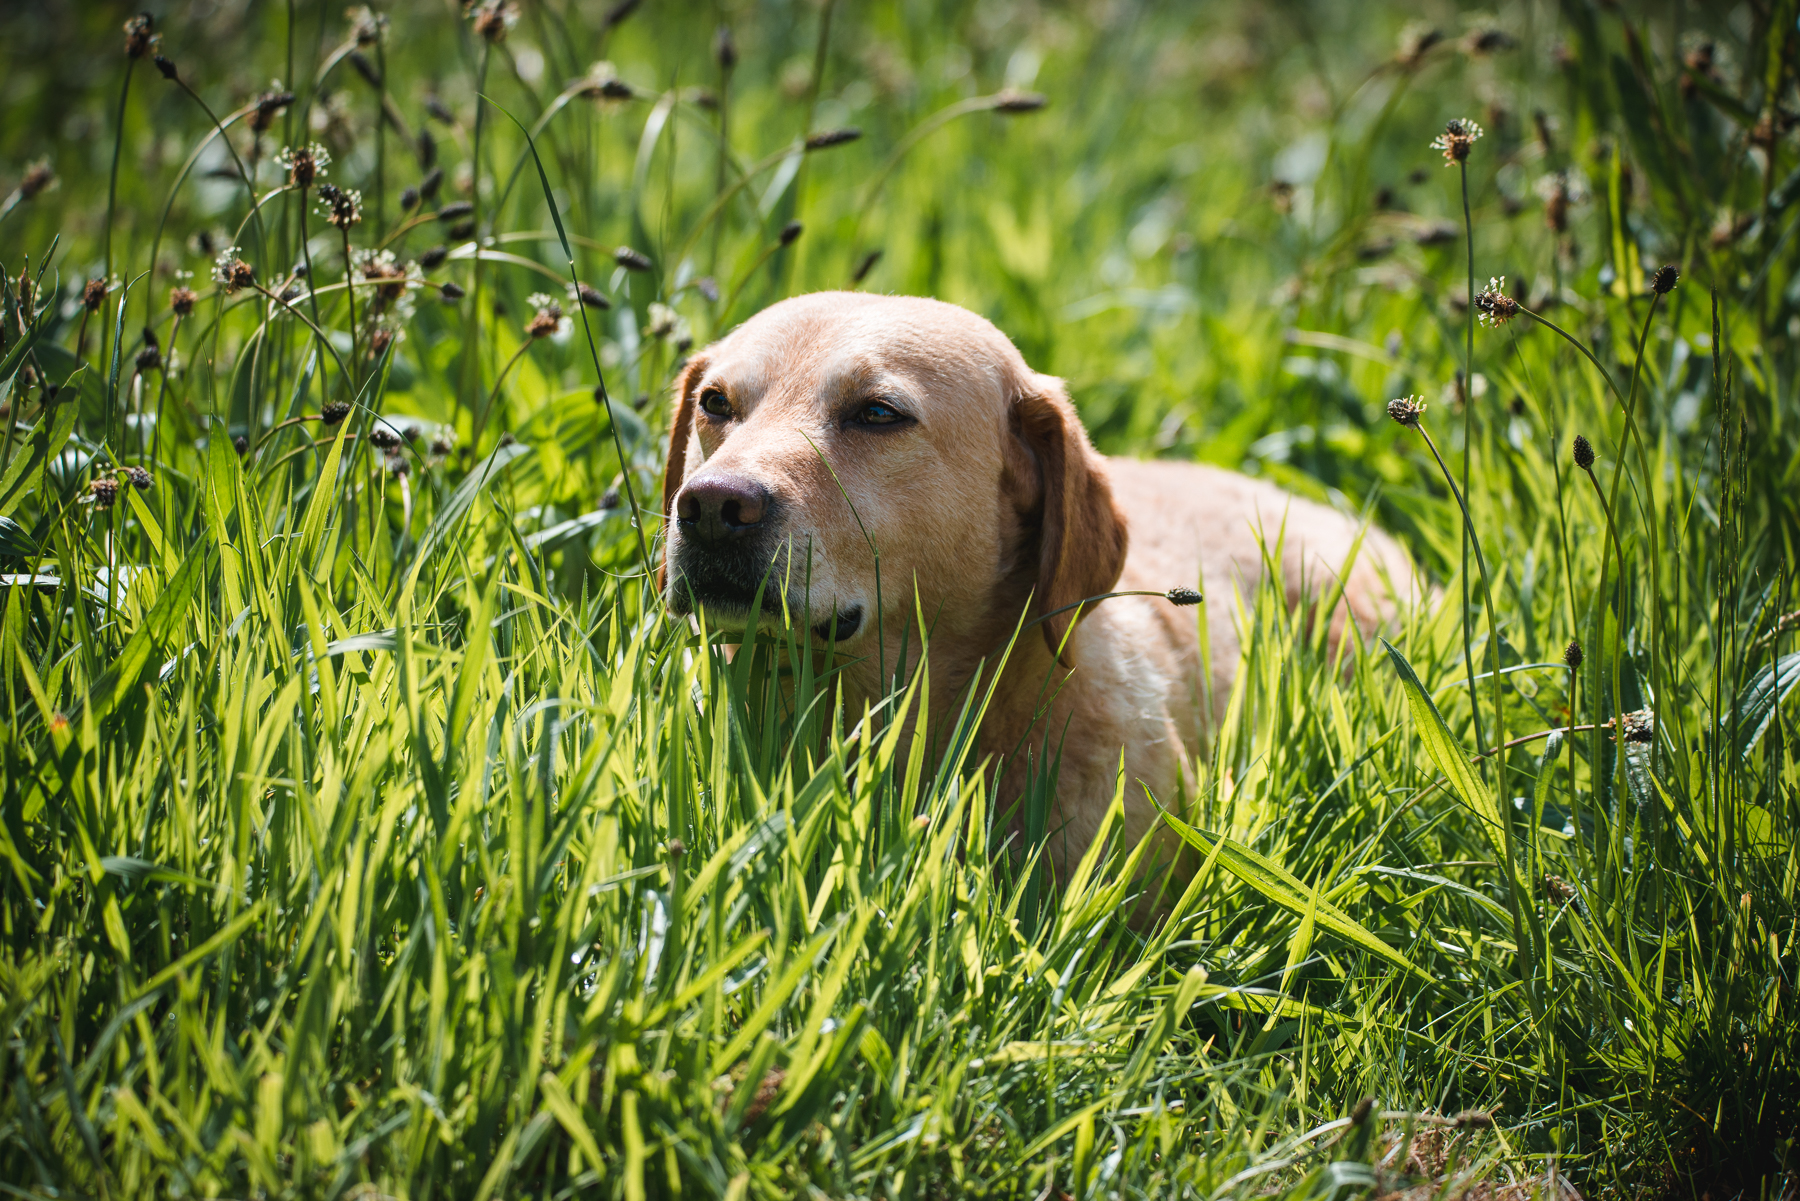 Professional dog photograph - a yellow Labrador in the grass.